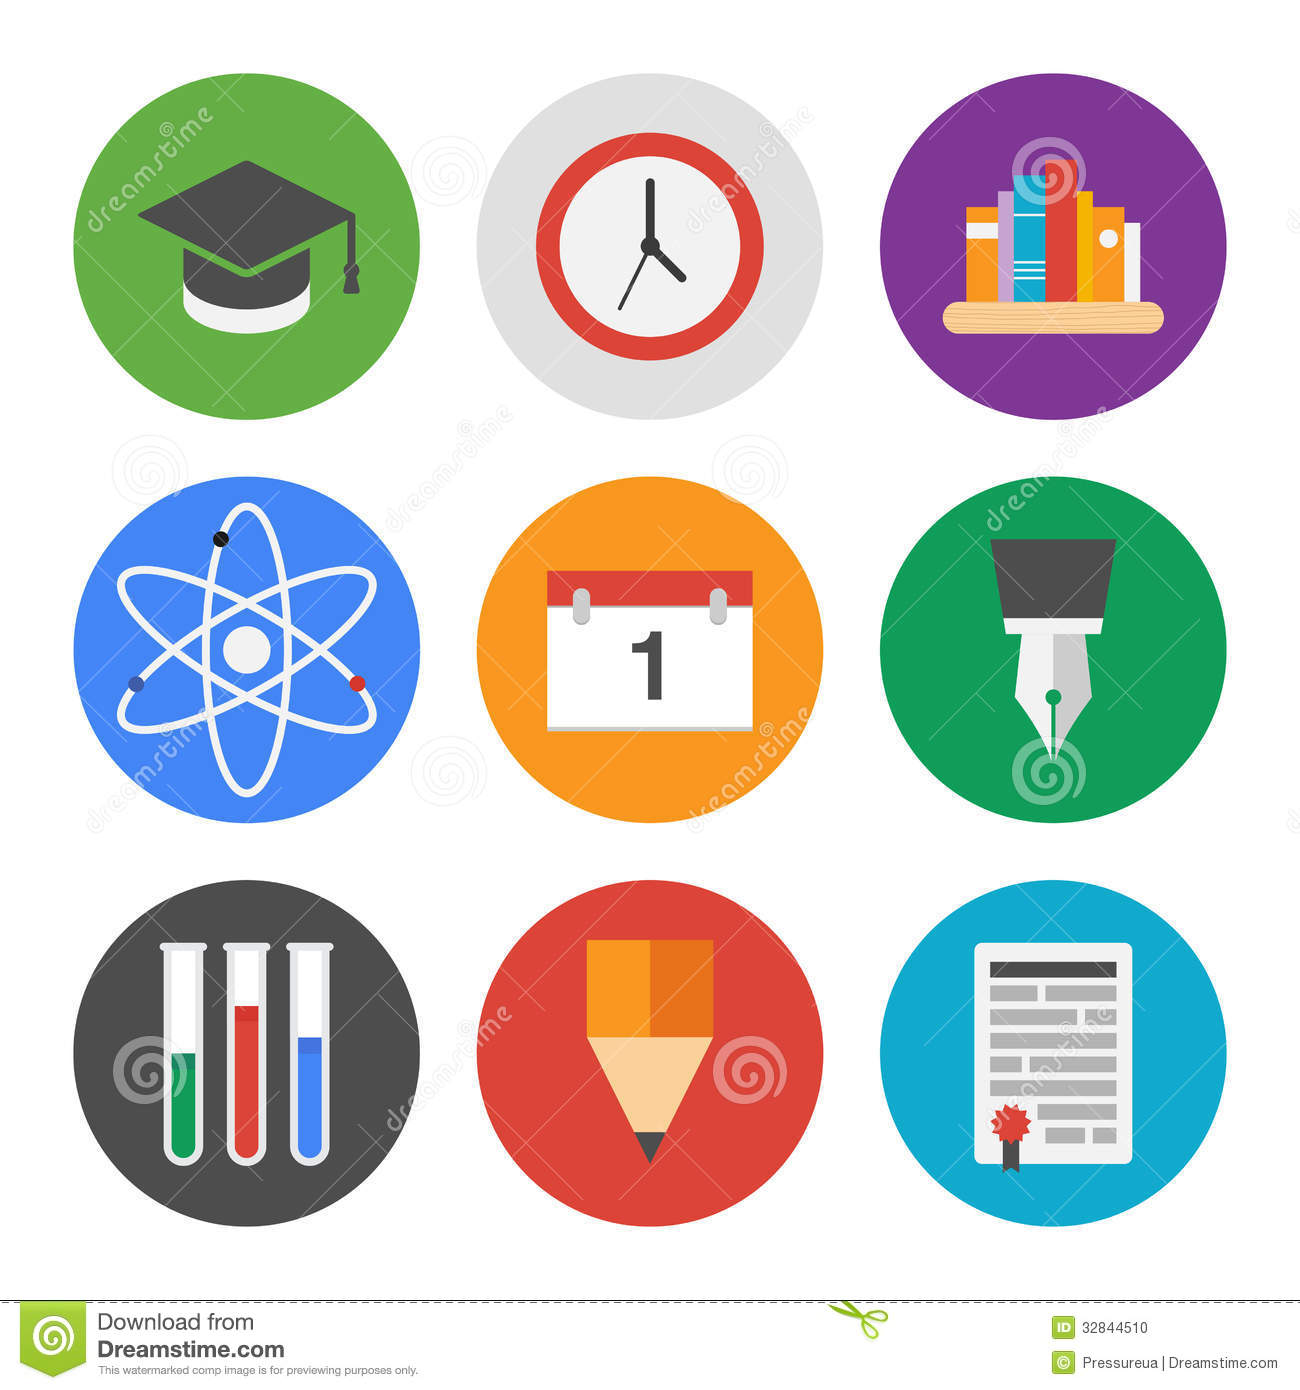 15 Education Subjects Icon Set Images